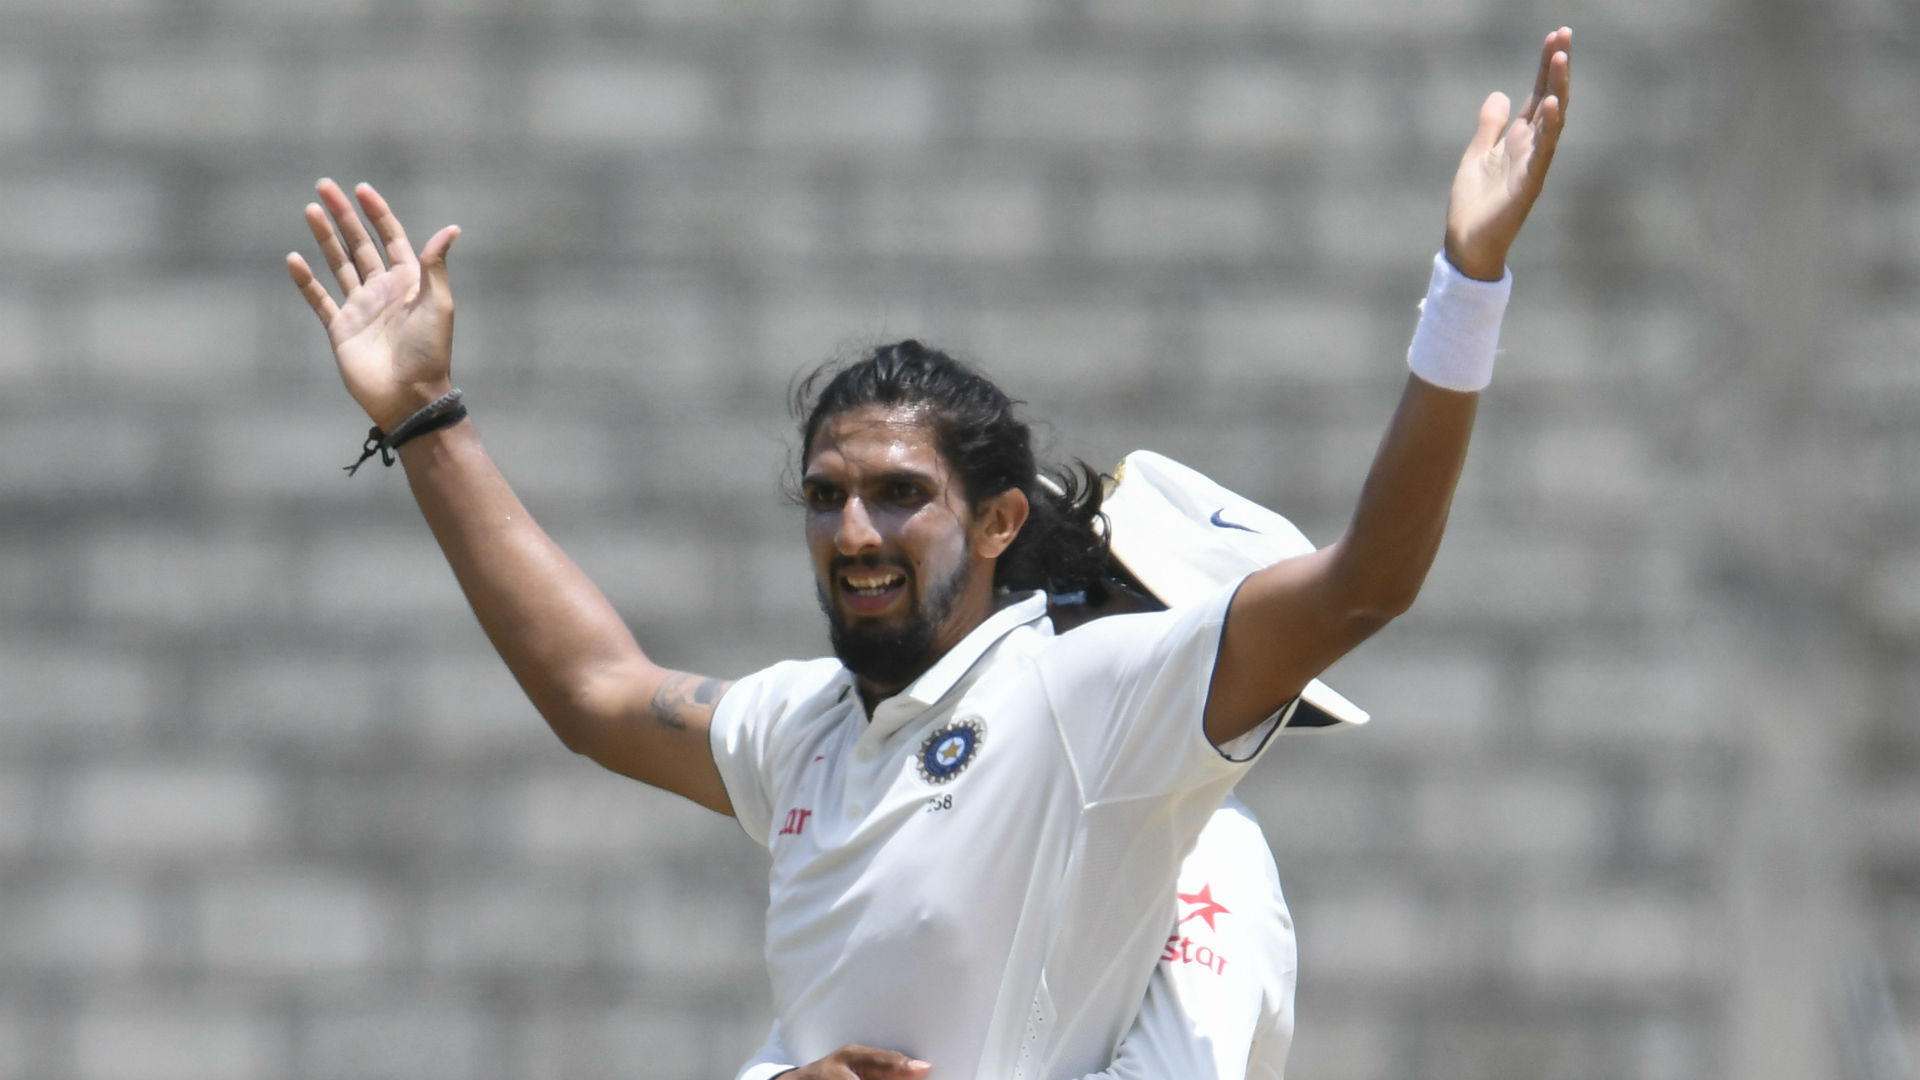 Ishant Sharma will reach a huge landmark when India face England in the third Test and Virat Kohli has lavished praise on the paceman.